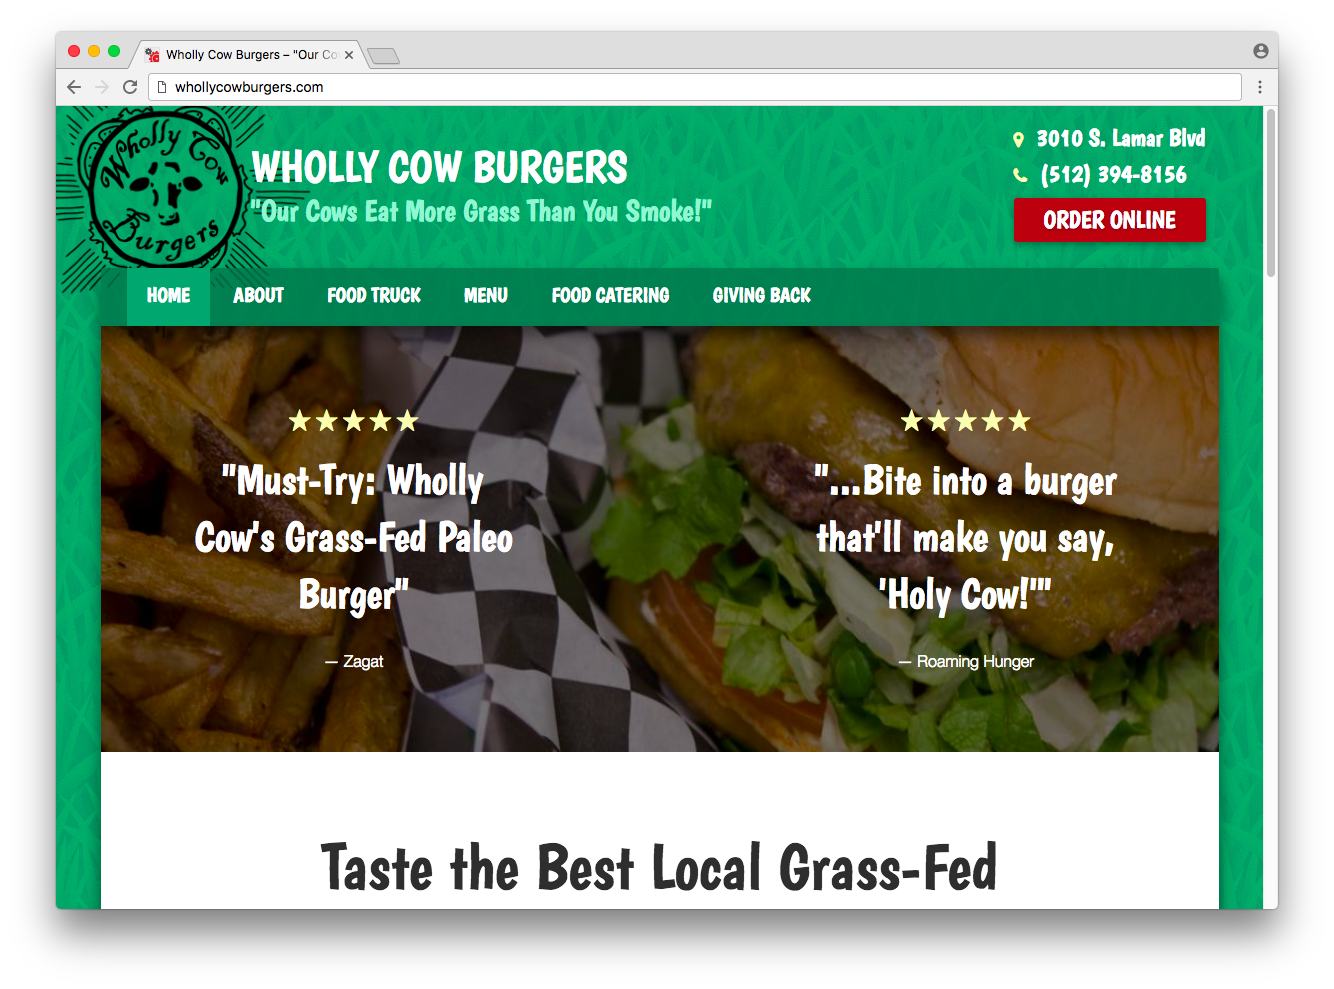 Wholly Cow Burgers